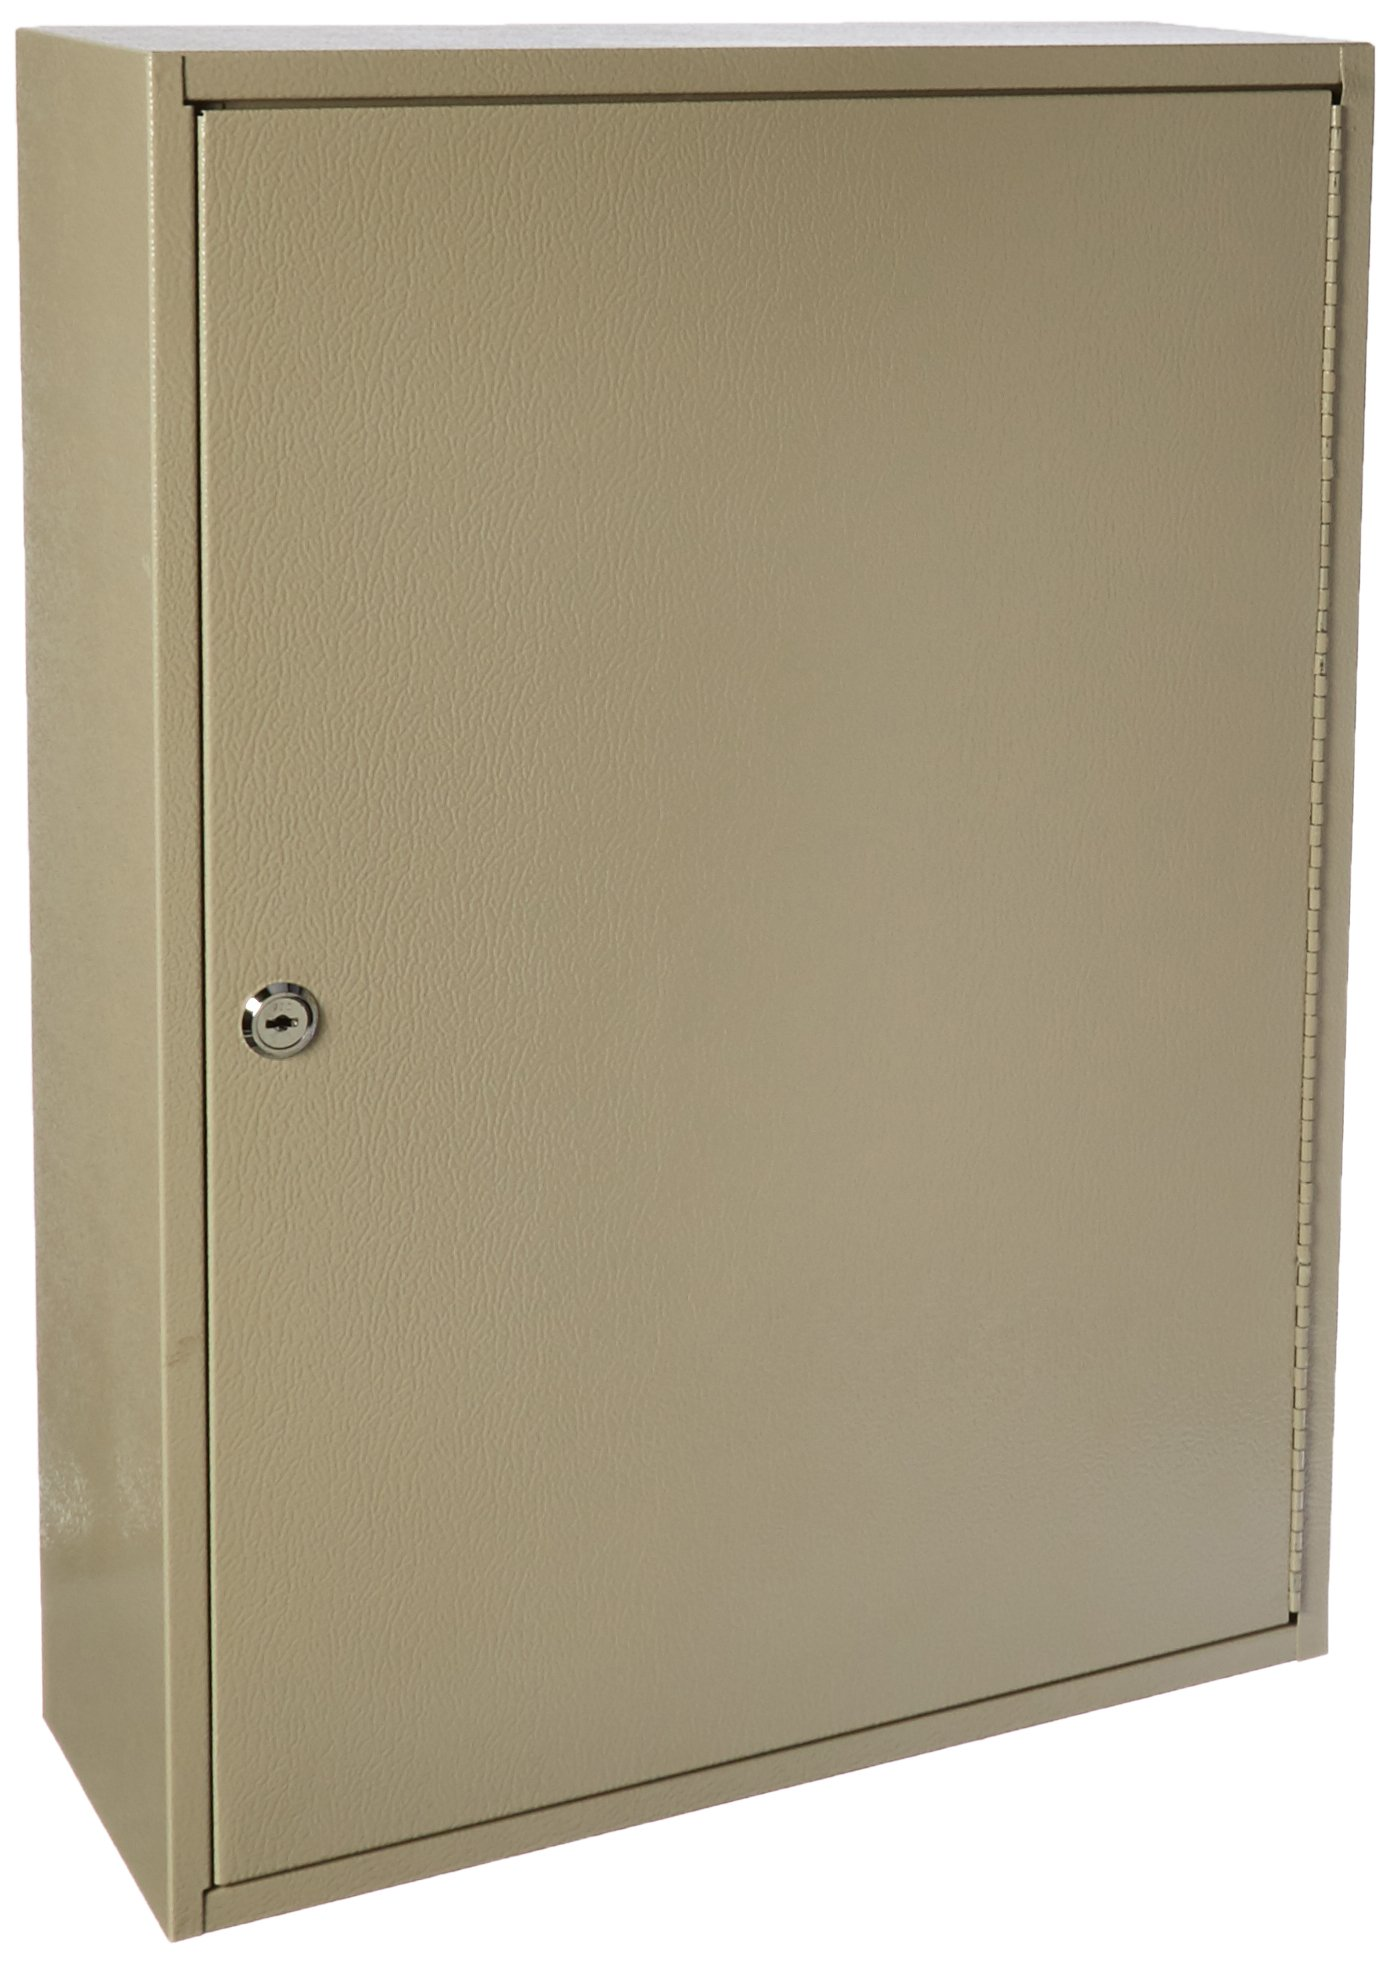 Buddy Products 300 Key Cabinet, Steel, 6 x 22 x 16 inches, Gray (1300-6)